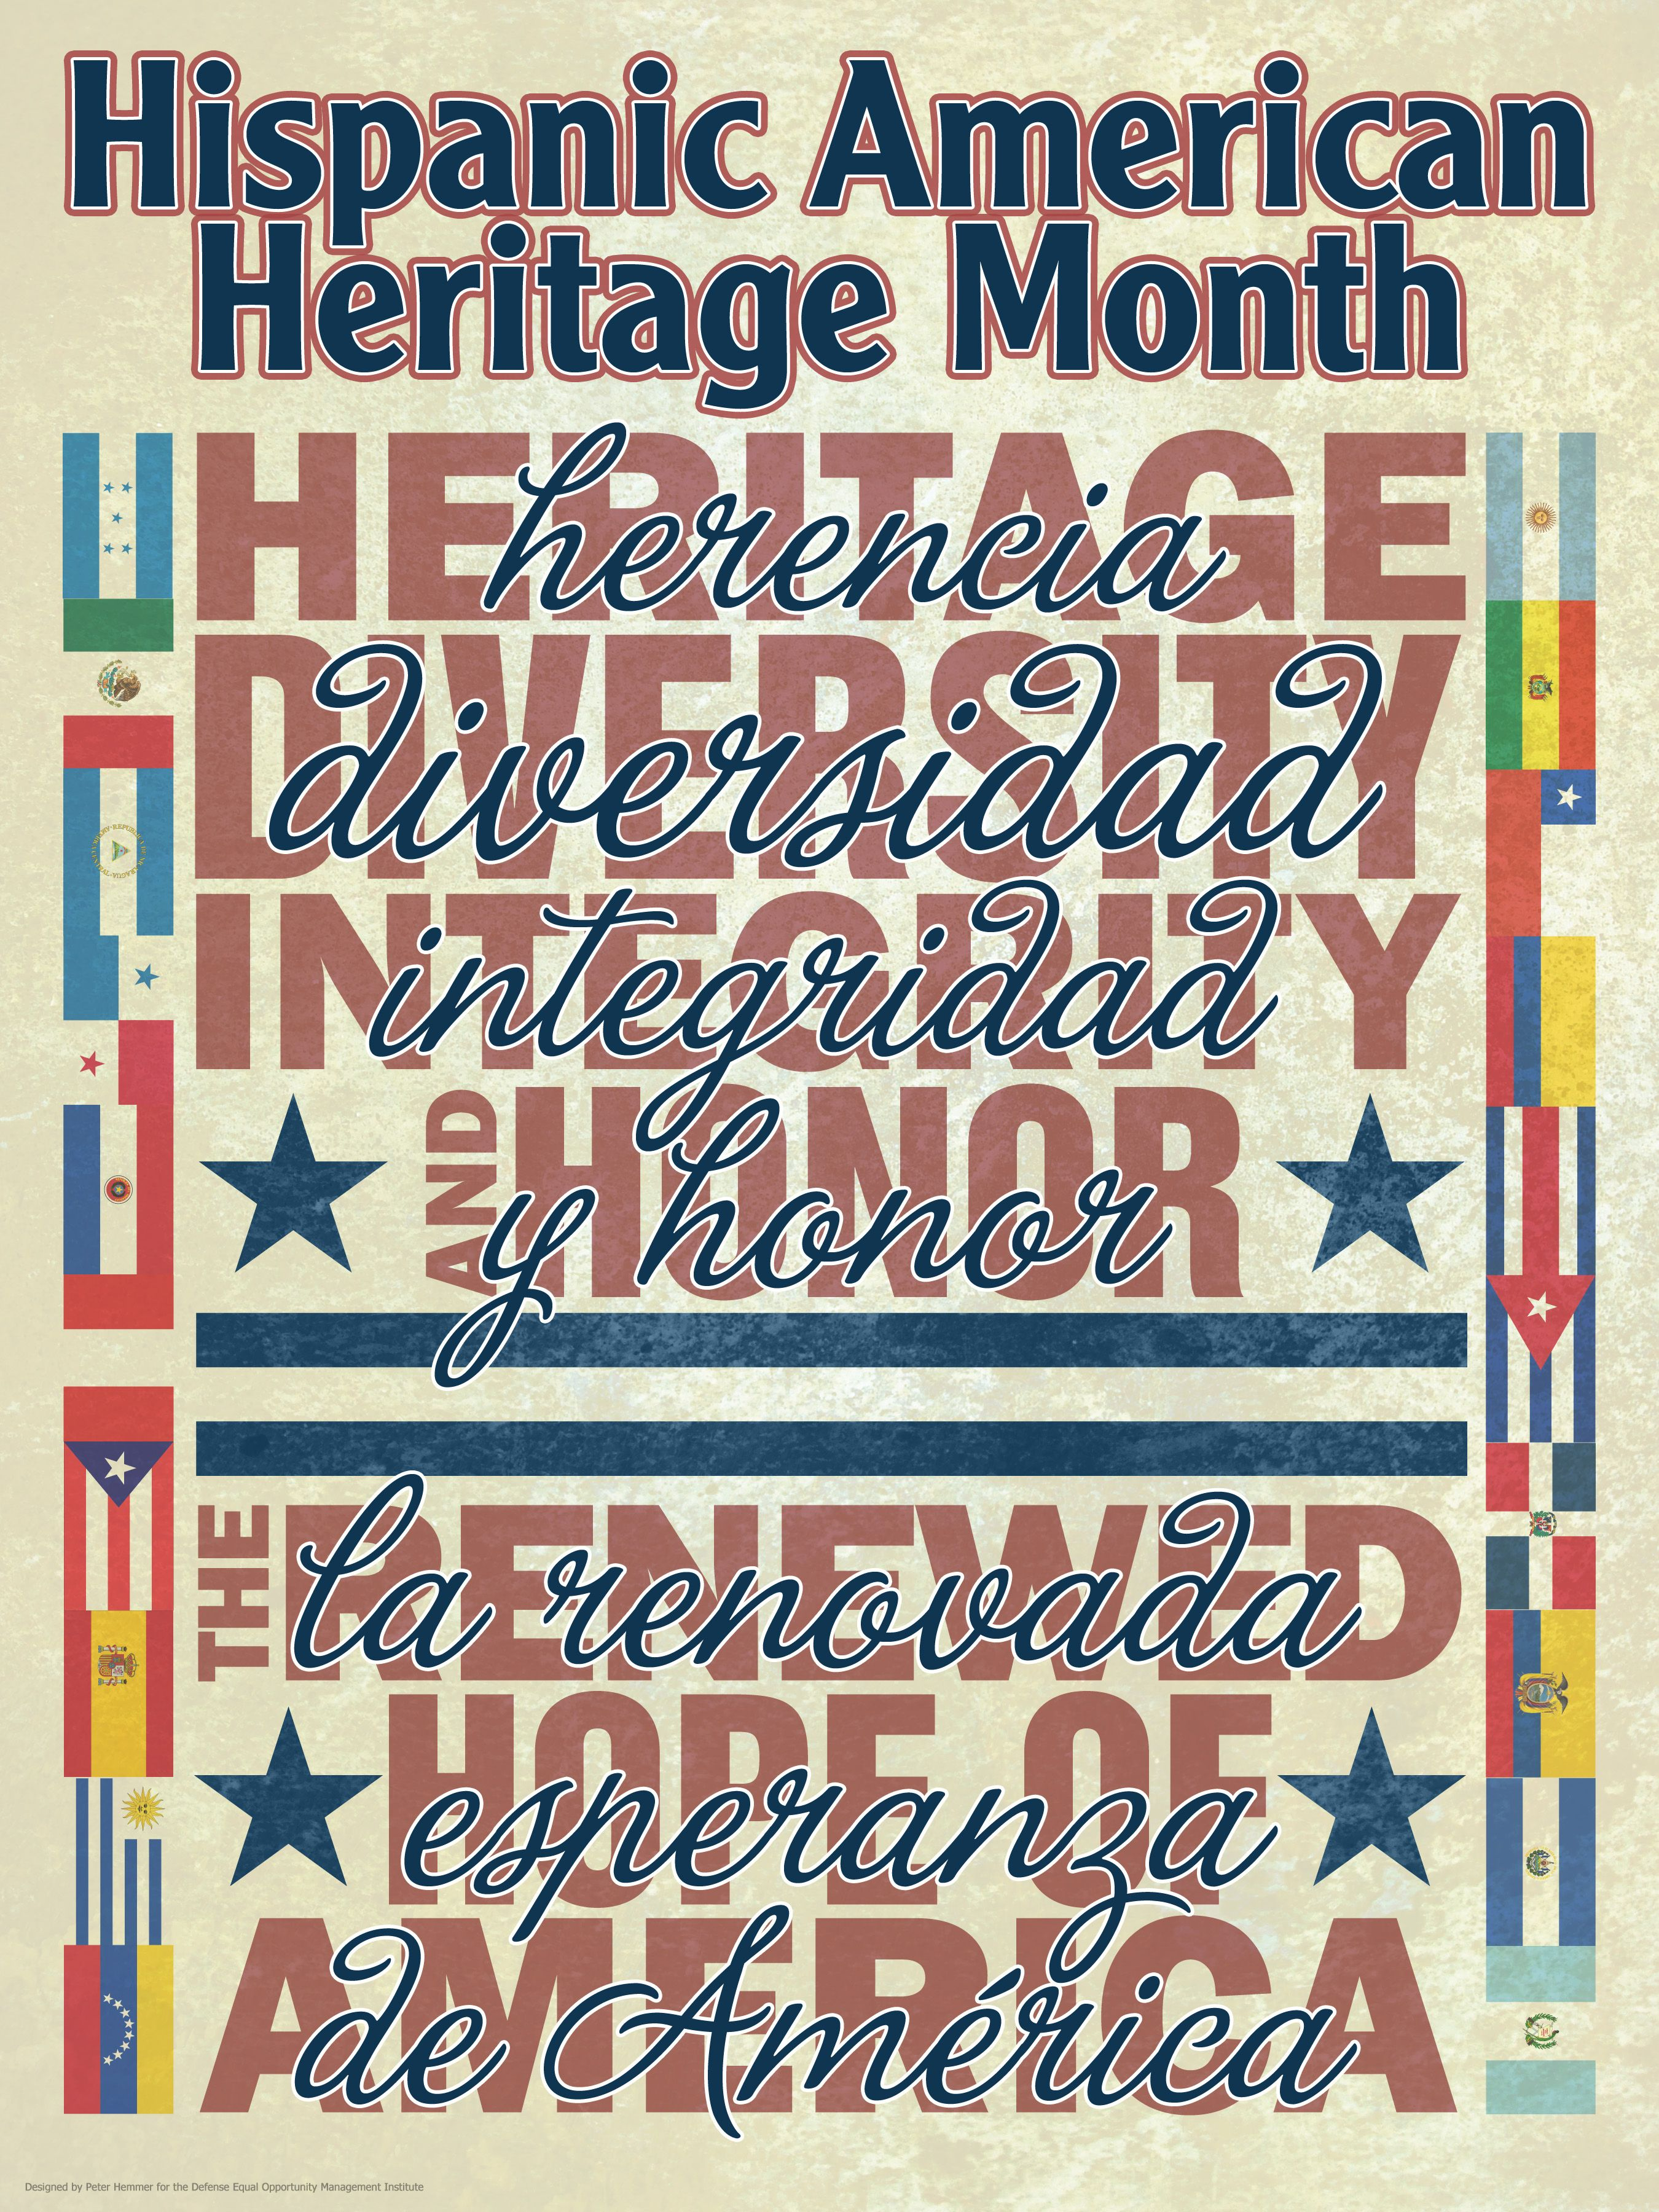 Hispanic Heritage Month Poster By Deomi